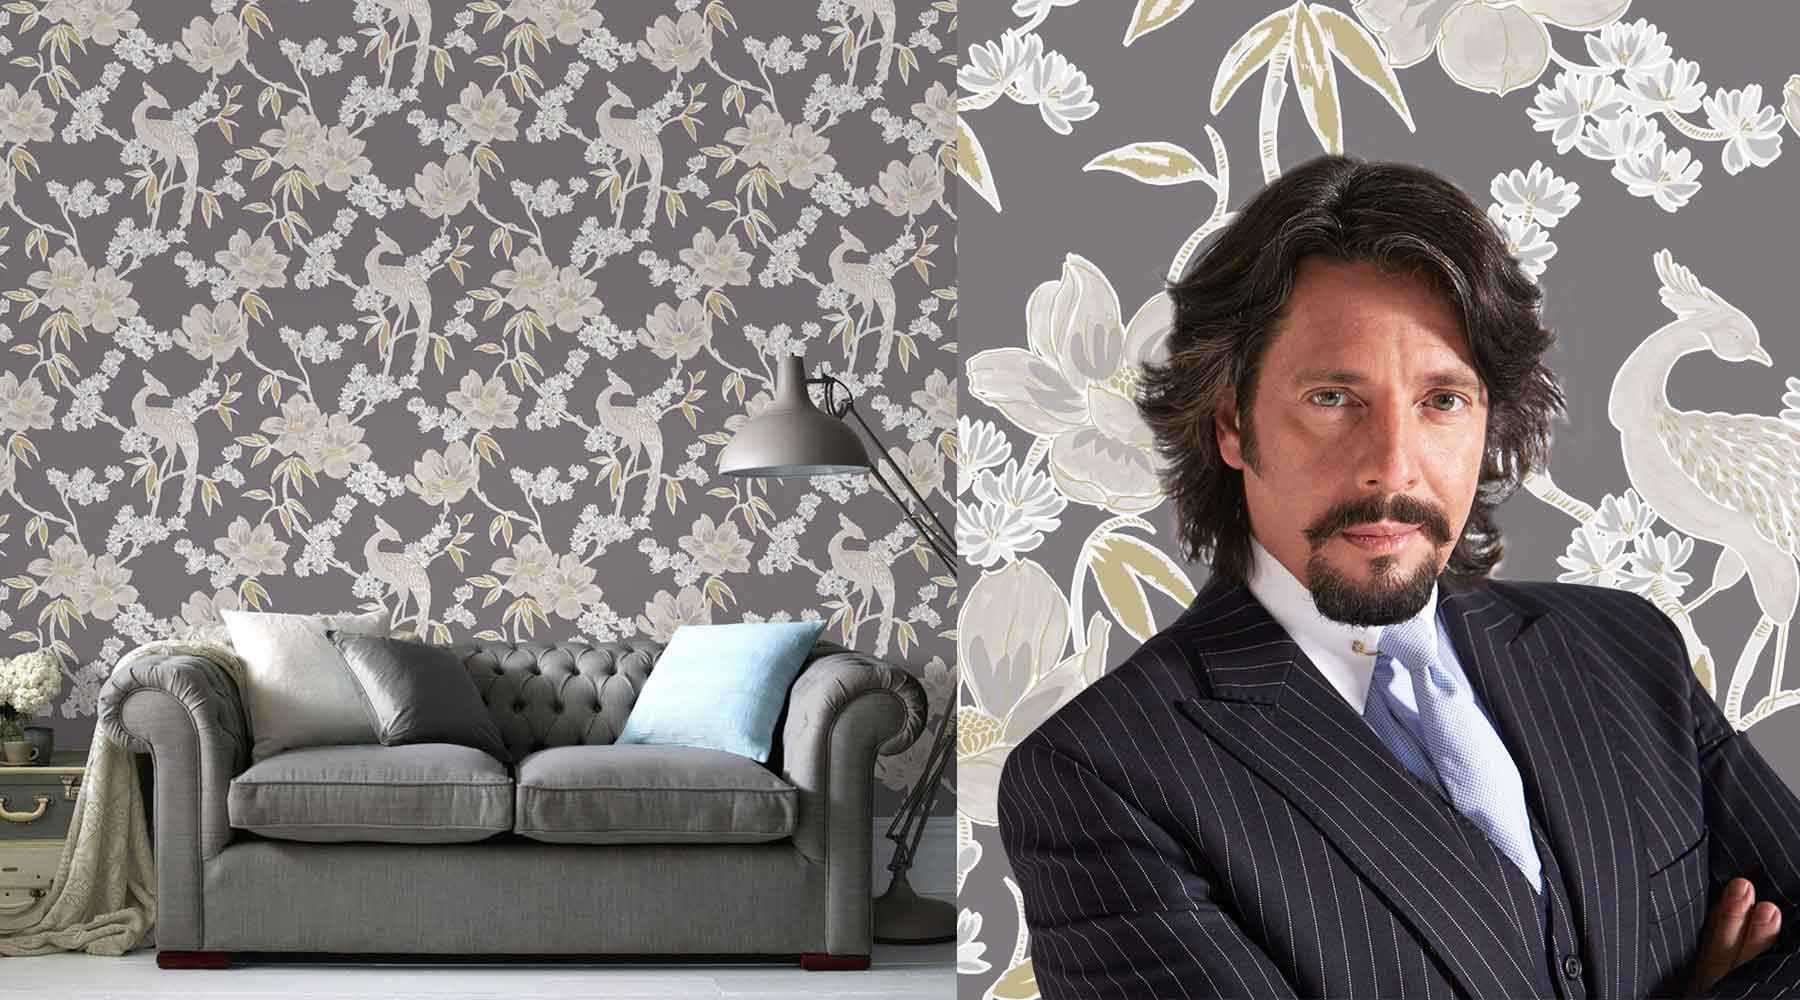 Wallpaper from Laurence Llewelyn Bowen